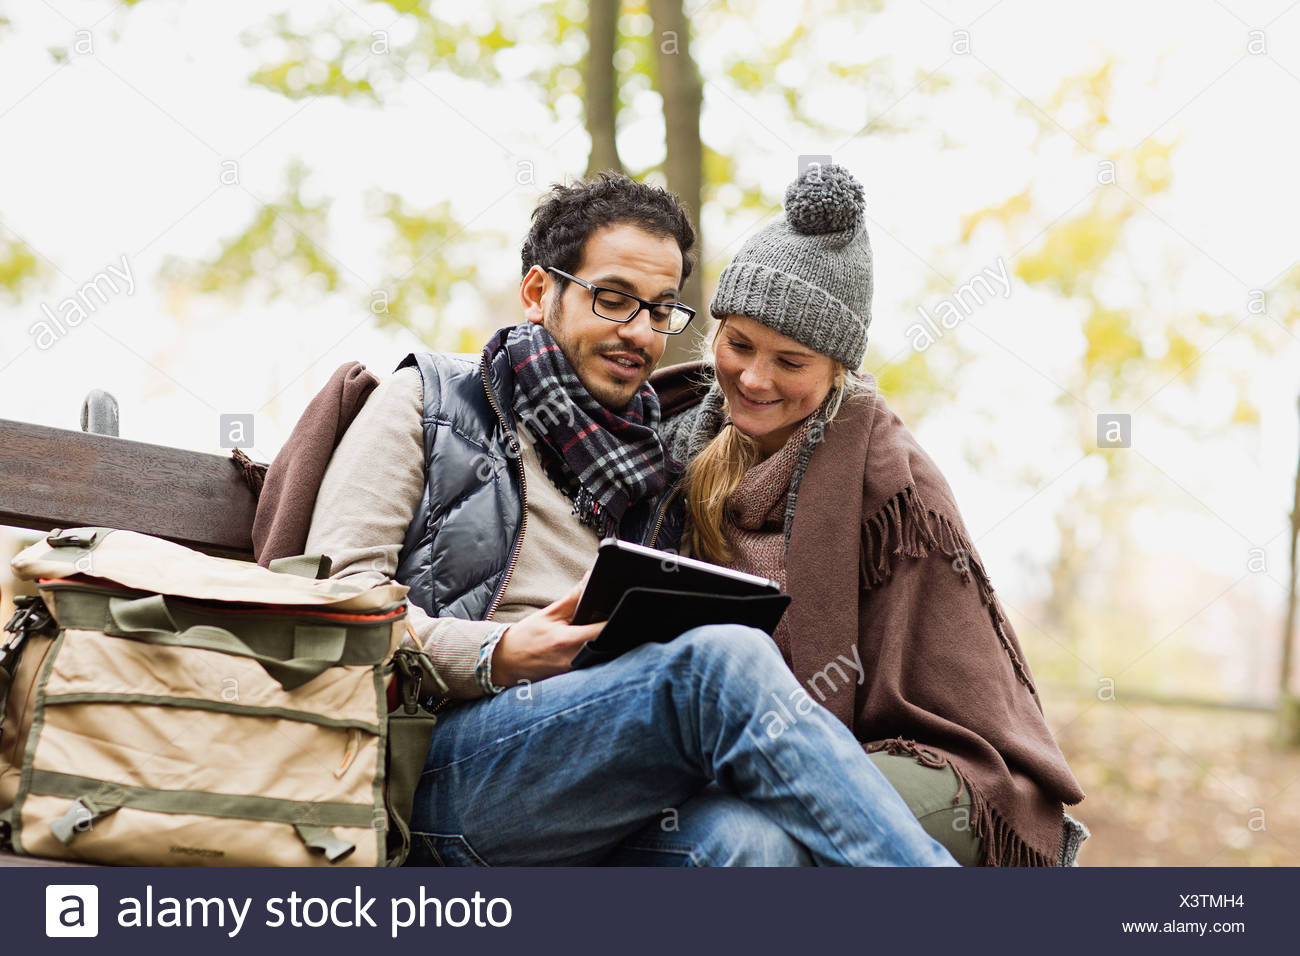 Couple using tablet computer in park Stock Photo